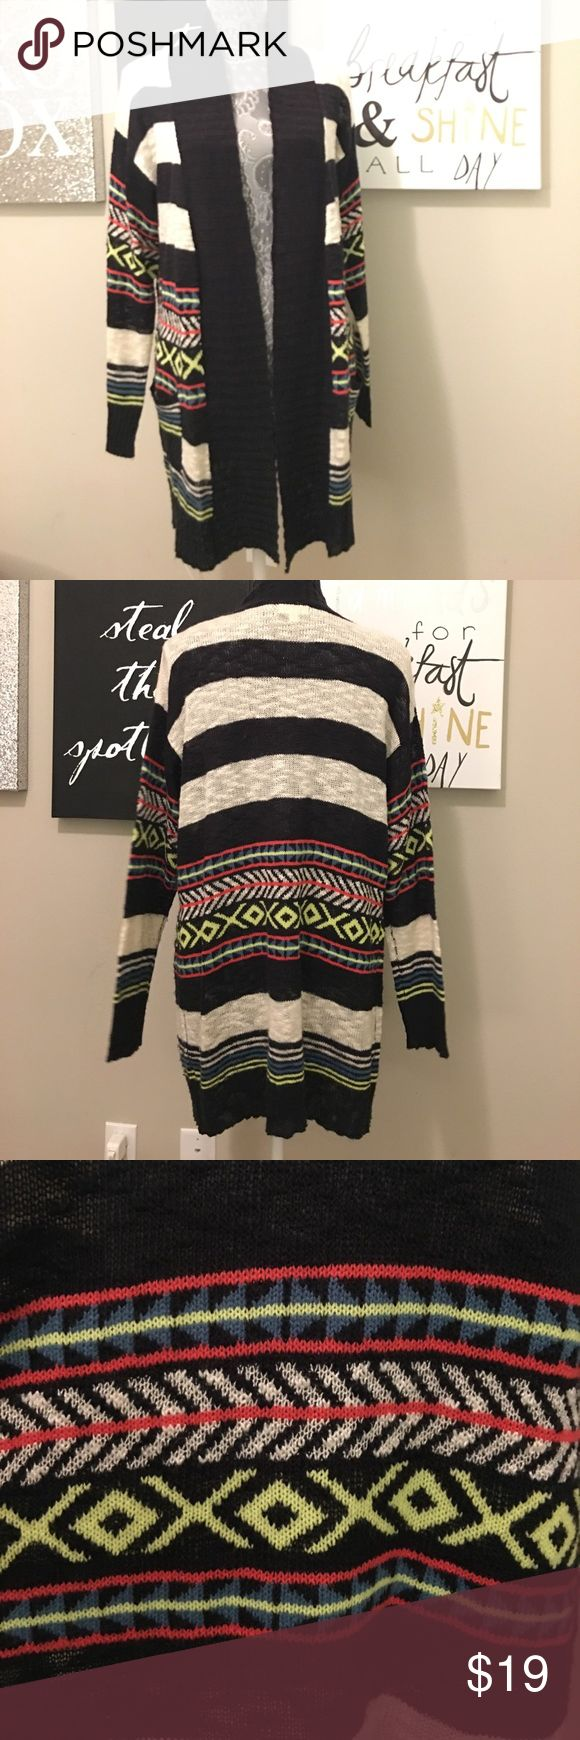 """Stripe and Tribal Print Long Cardigan Super cute and cozy stripe and tribal print long cardigan. The tribal print colors are hot pink, real, and a bright yellow-green. The stripes are black and ivory. This cardigan is in excellent condition and has only been worn once. I paired it with a black tank top, jeans, and some over the knee boots! It's a necessity in every woman's closet! The brand """"eyeshadow"""" is from Charlotte Russe. Eyeshadow Sweaters Cardigans"""